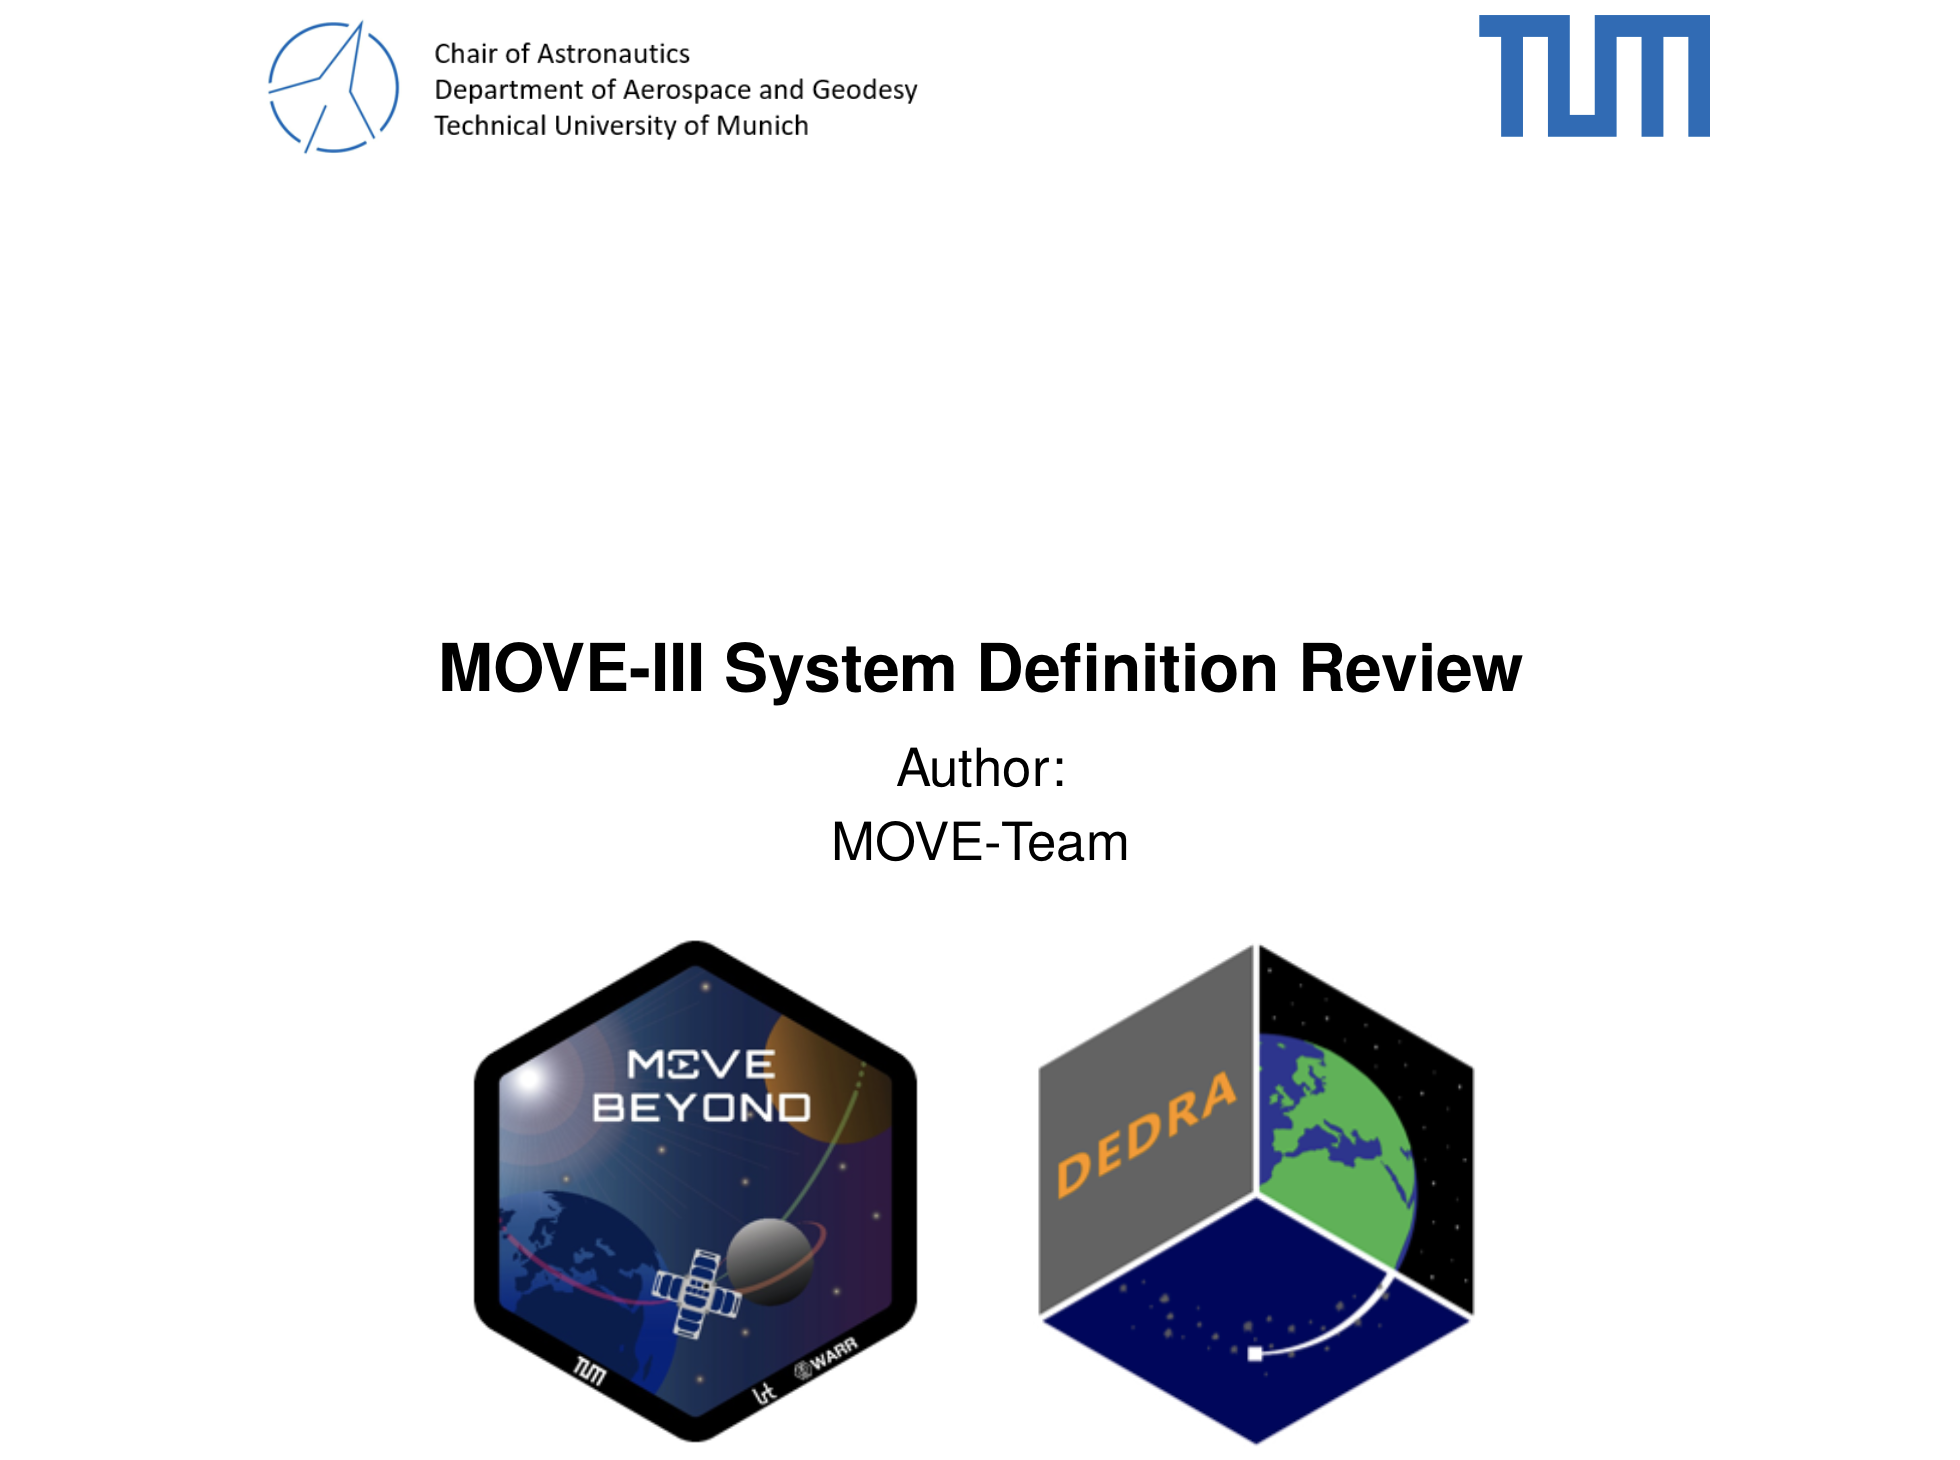 System Definition Review: finally completed!